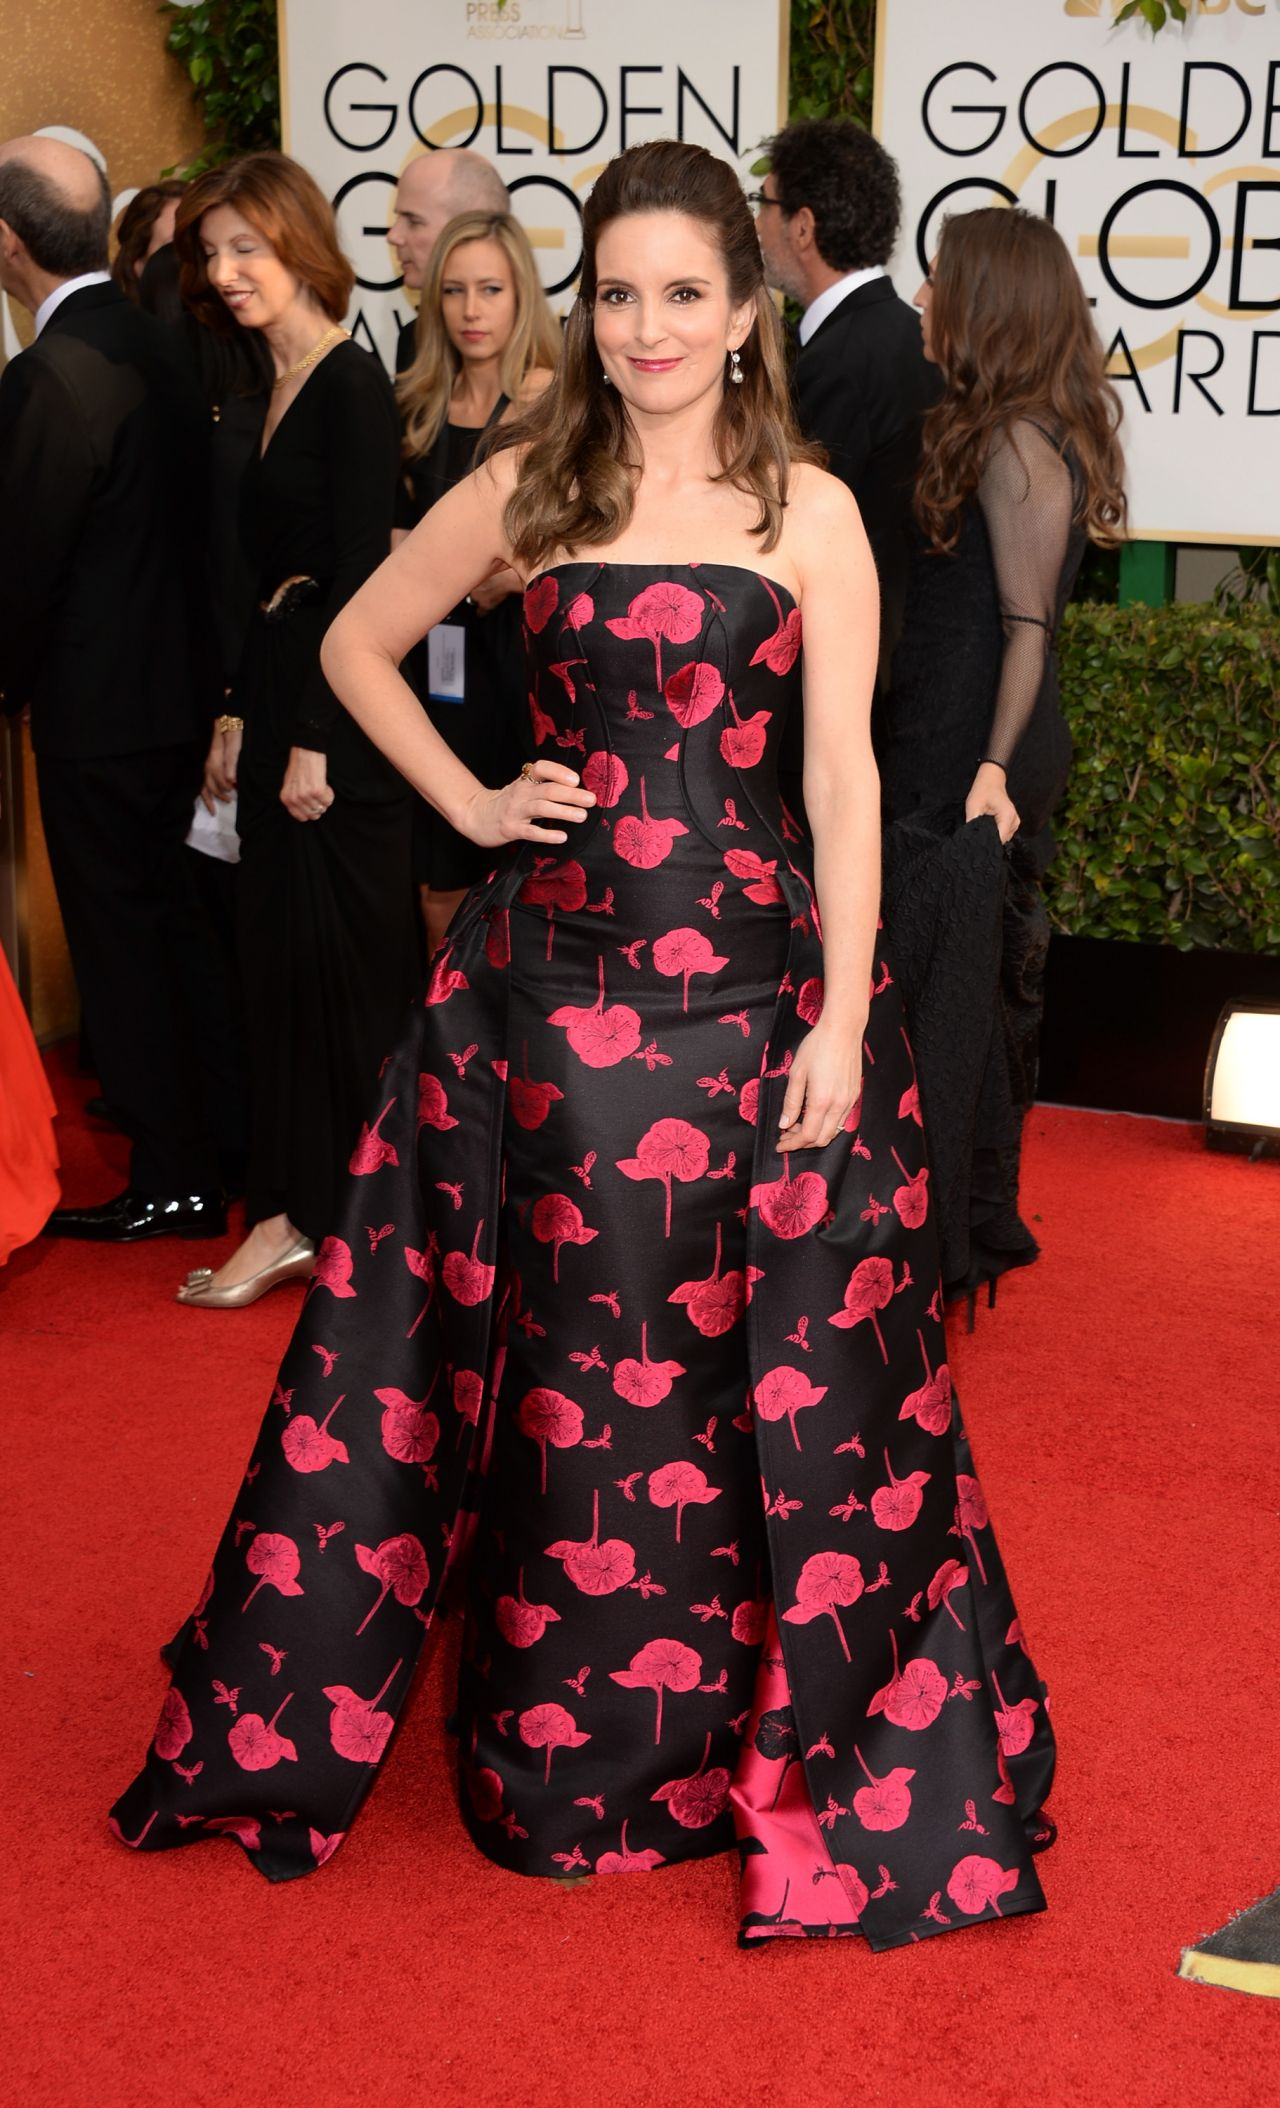 Tina Fey at Golden Globe Awards 2014